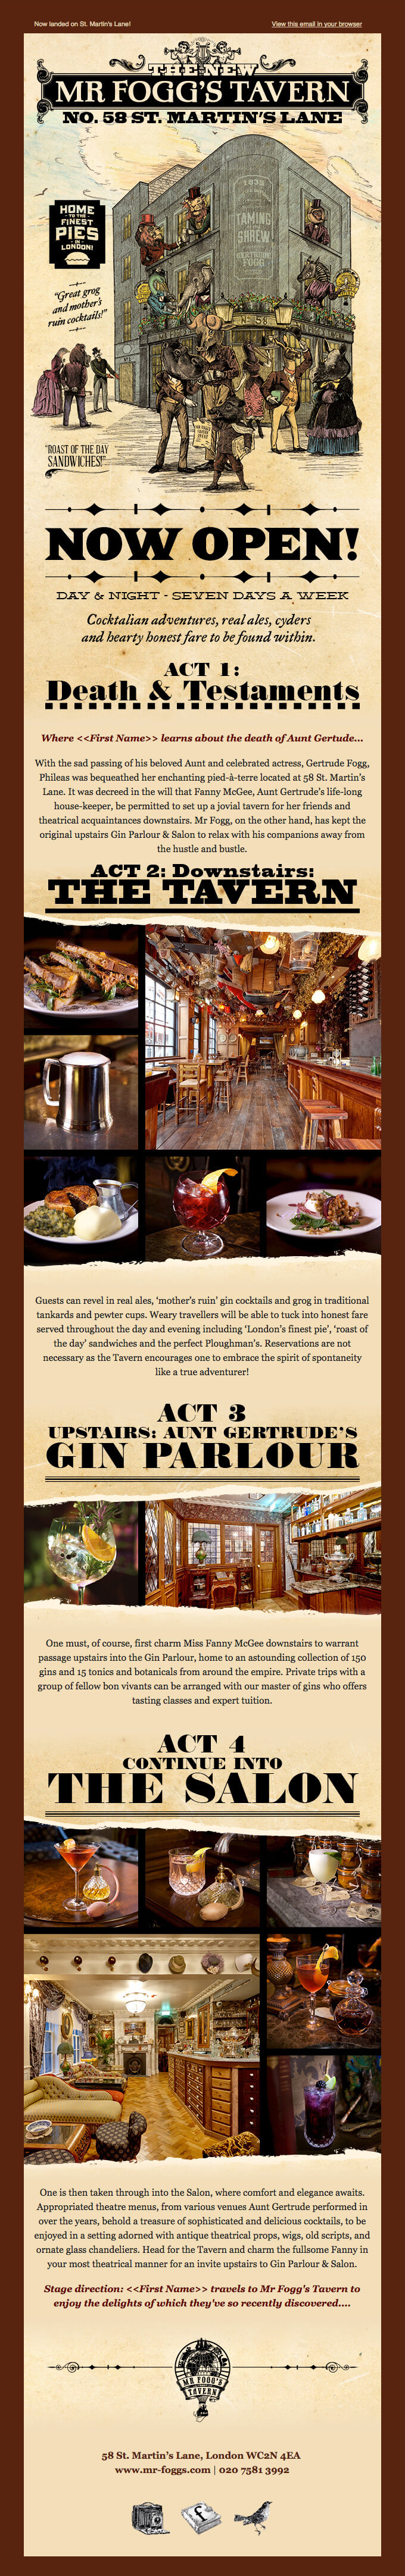 Business email samples-Mr Fogg Tavern